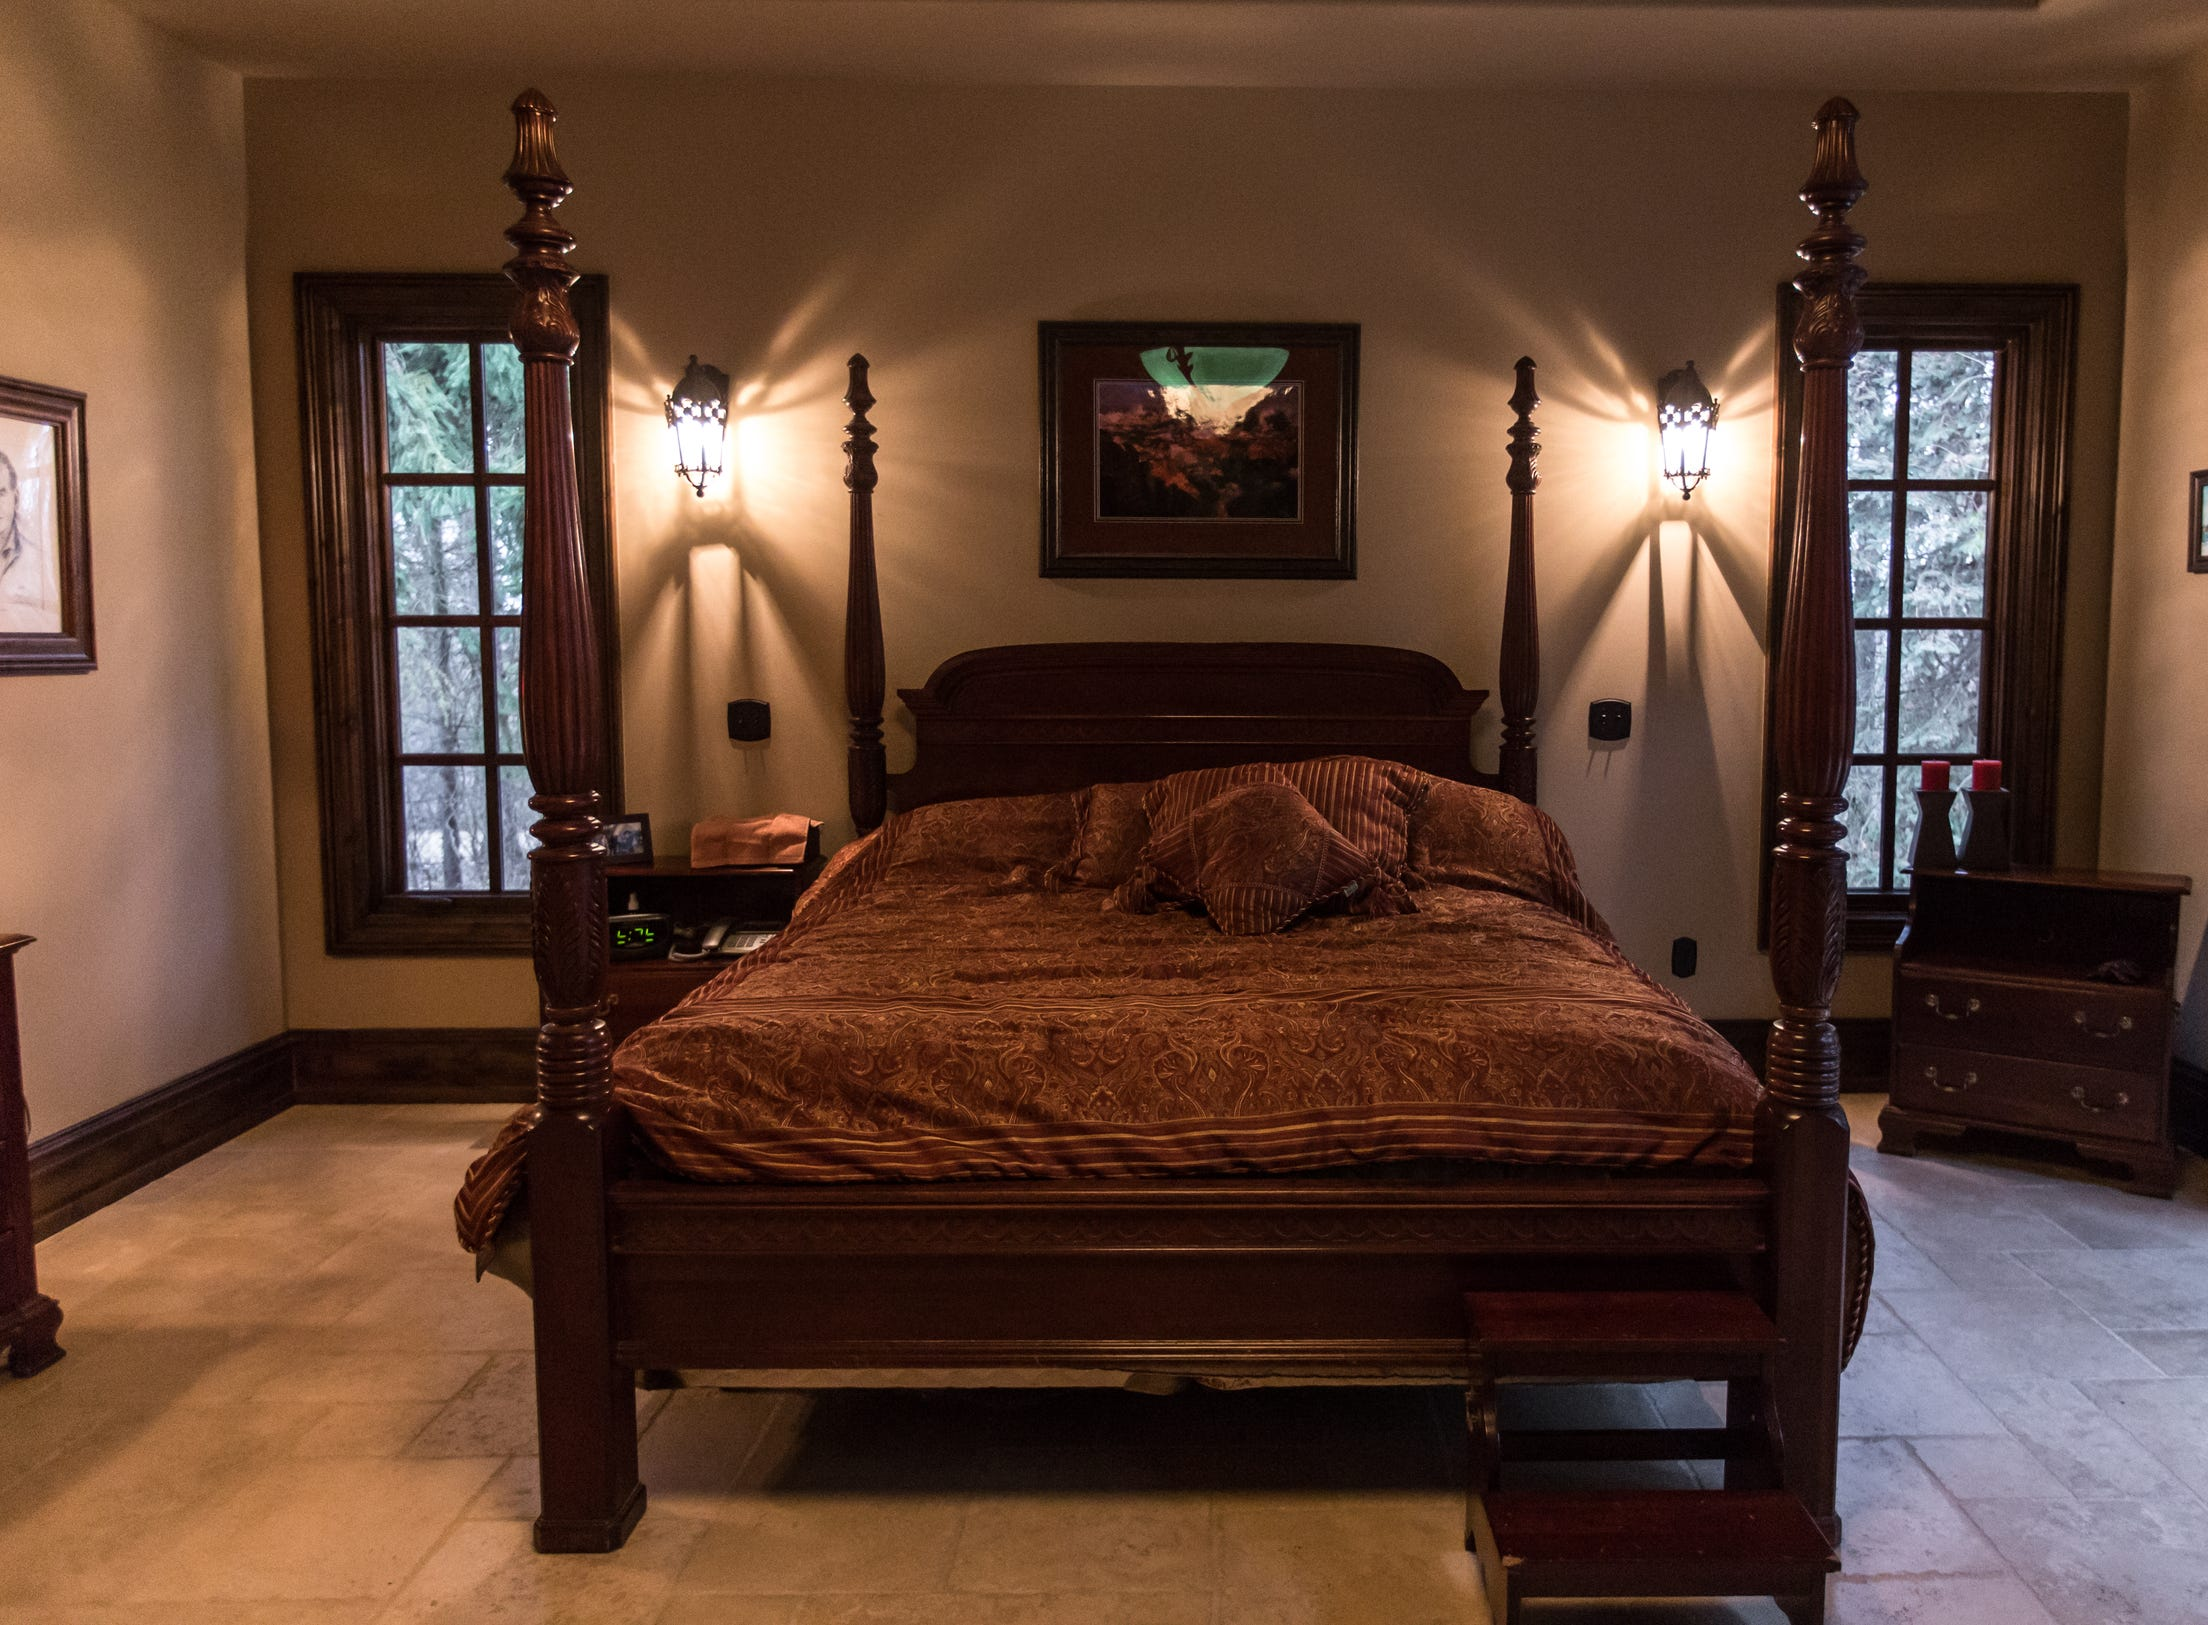 A view of the master bedroom with Amish hand hewn beams and alder wood ceiling is seen in the home envisioned after the Biltmore Estate designed by Alex Bogarts and built by an award winning builder as his own personal residence.